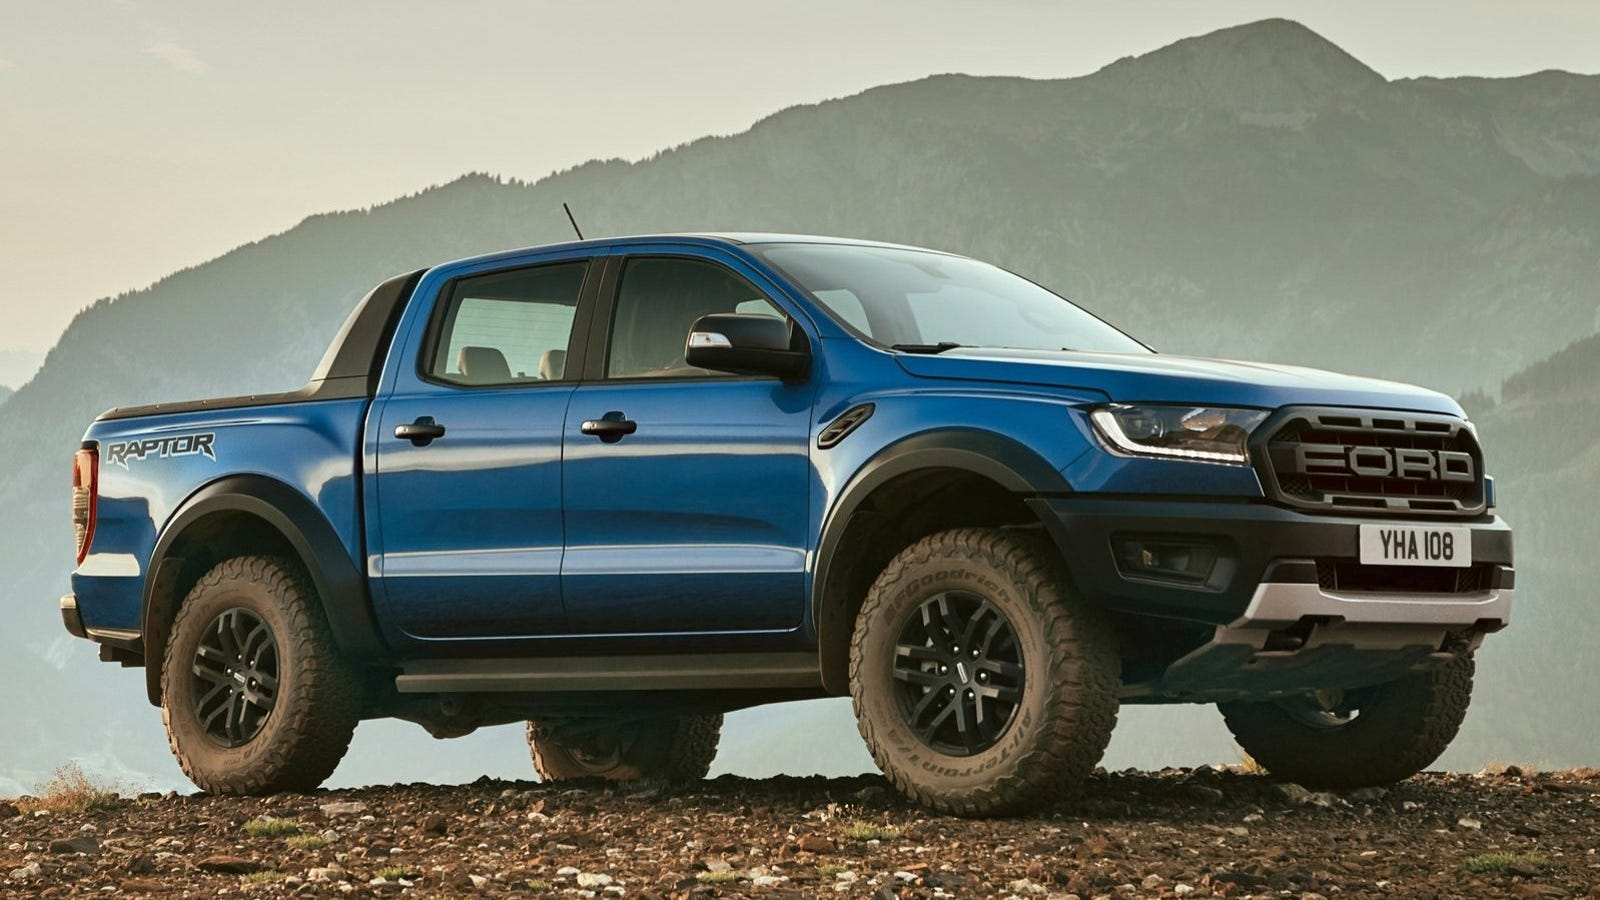 Ford Engineer's Social Media Hints at the Next Generation Ranger Raptor Coming to America: Report